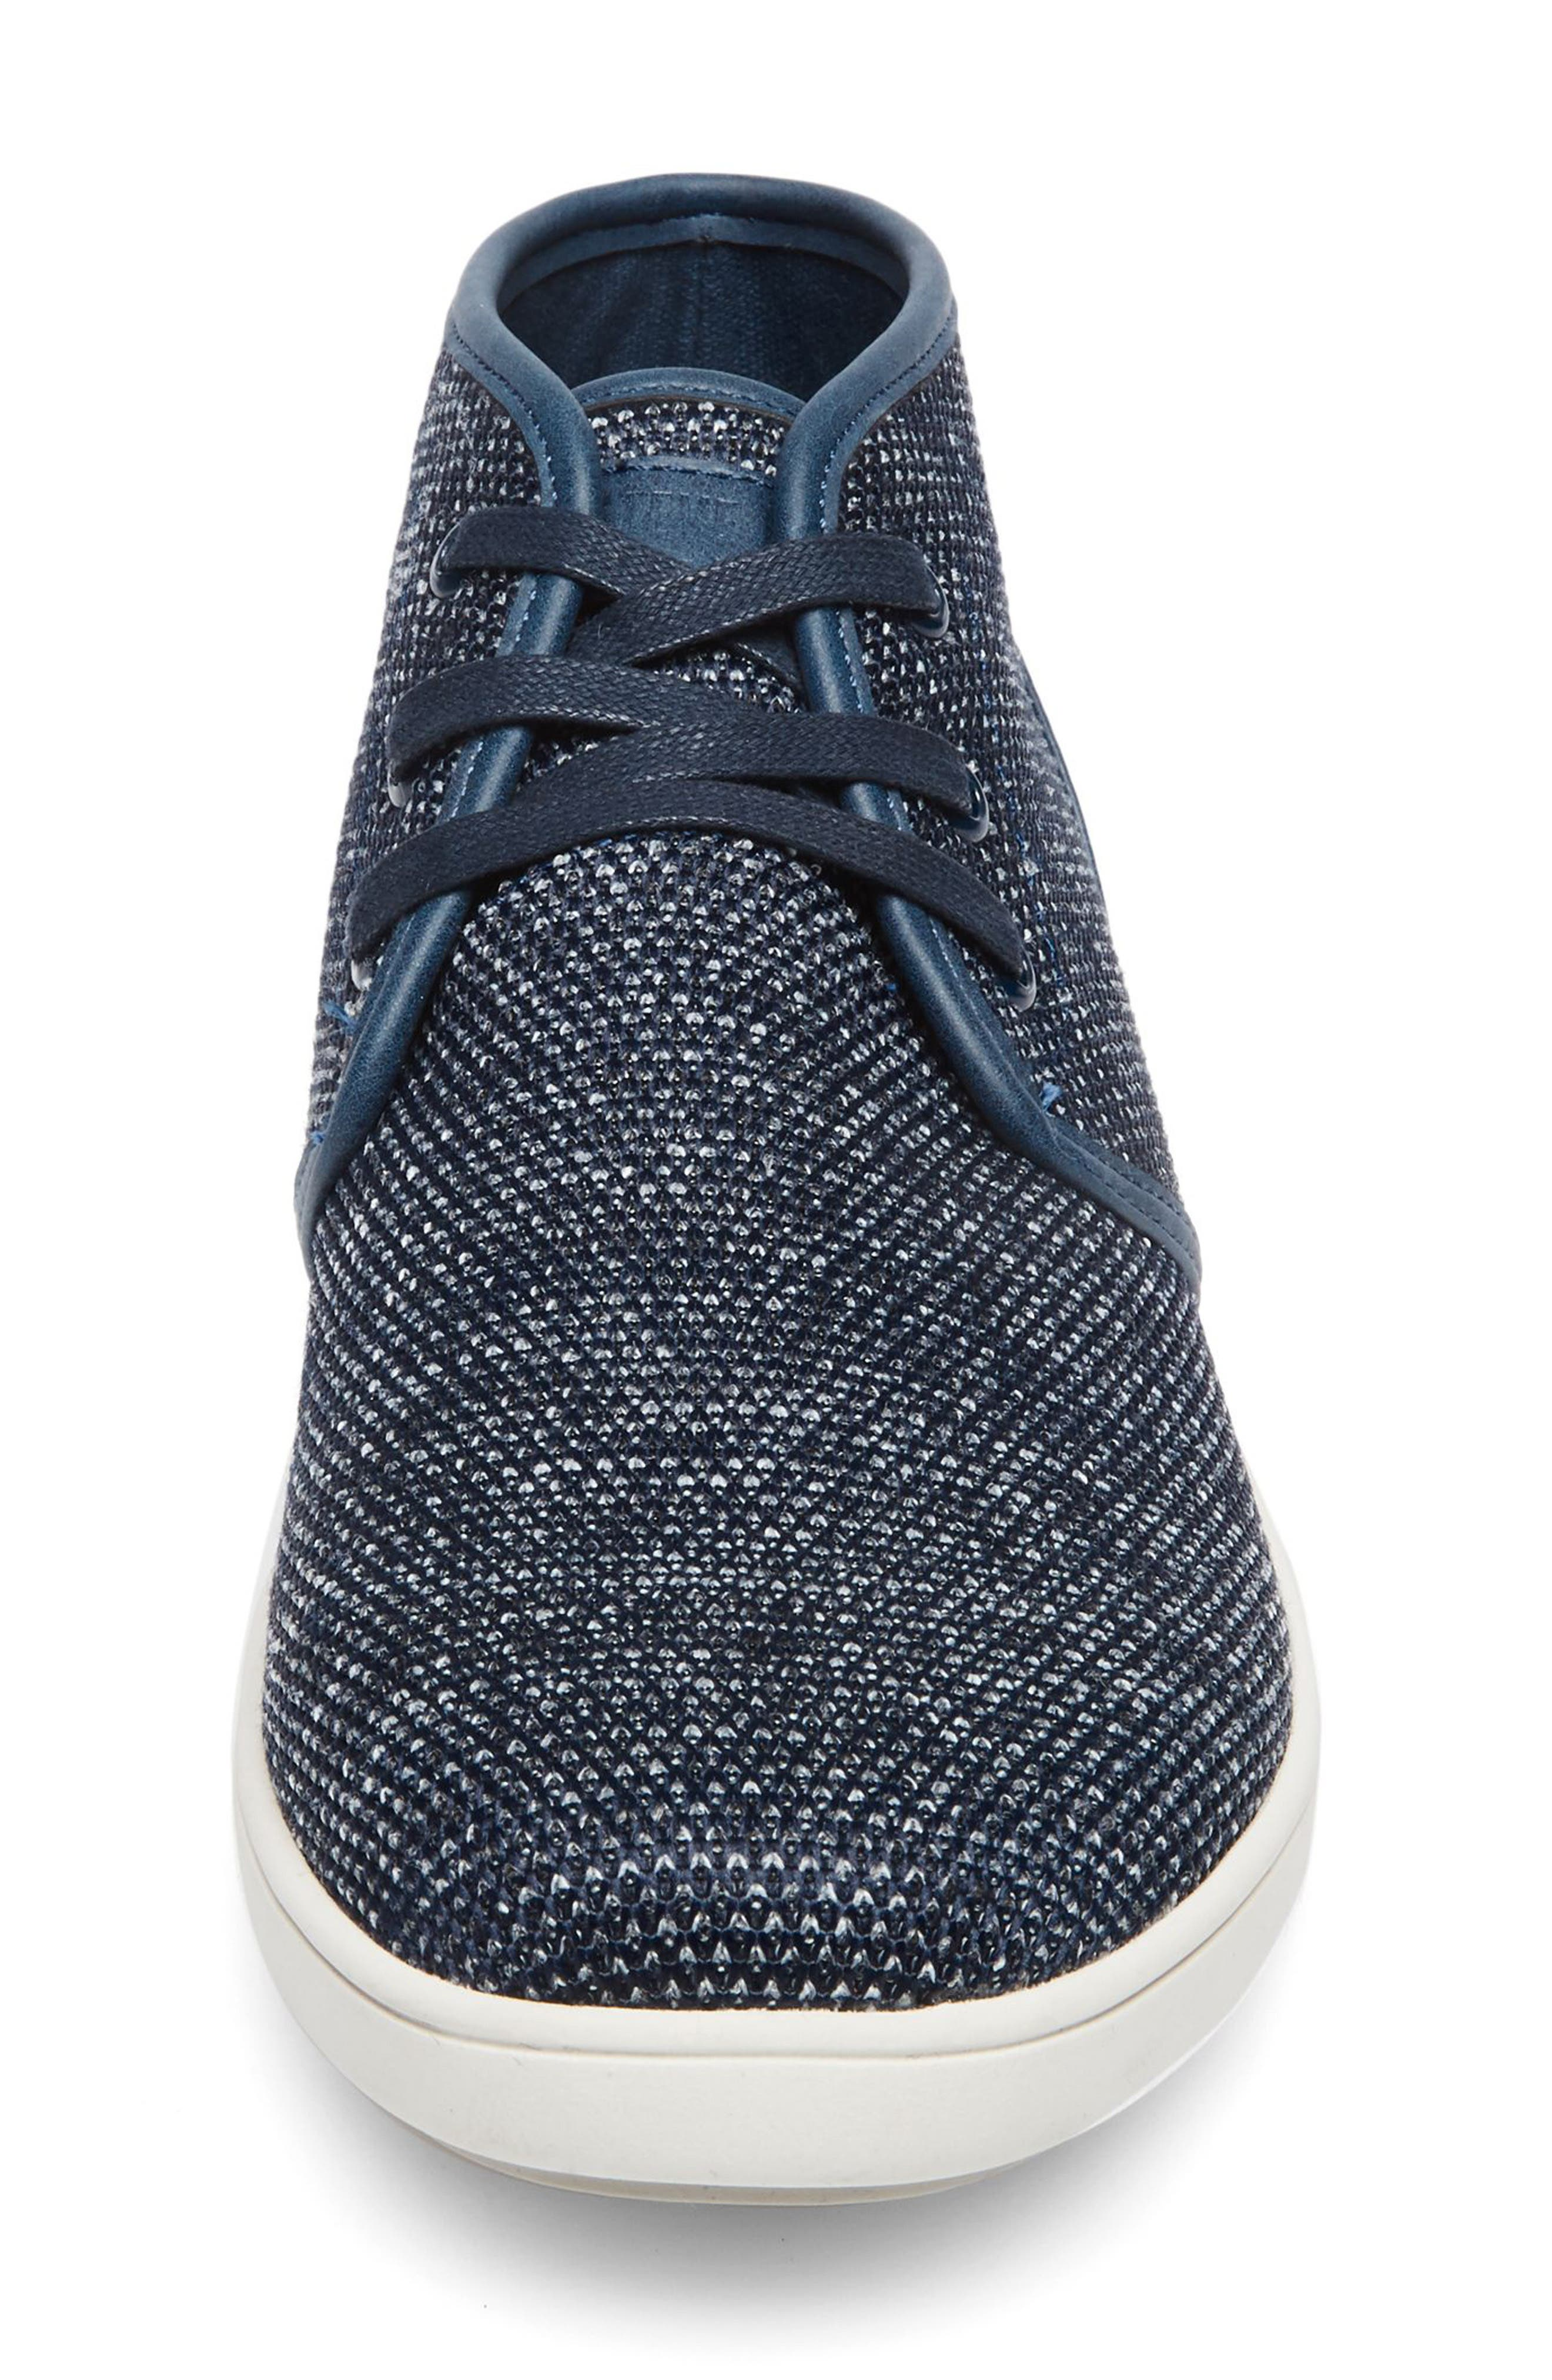 Fowler Knit Mid Top Sneaker,                             Alternate thumbnail 4, color,                             Navy Leather